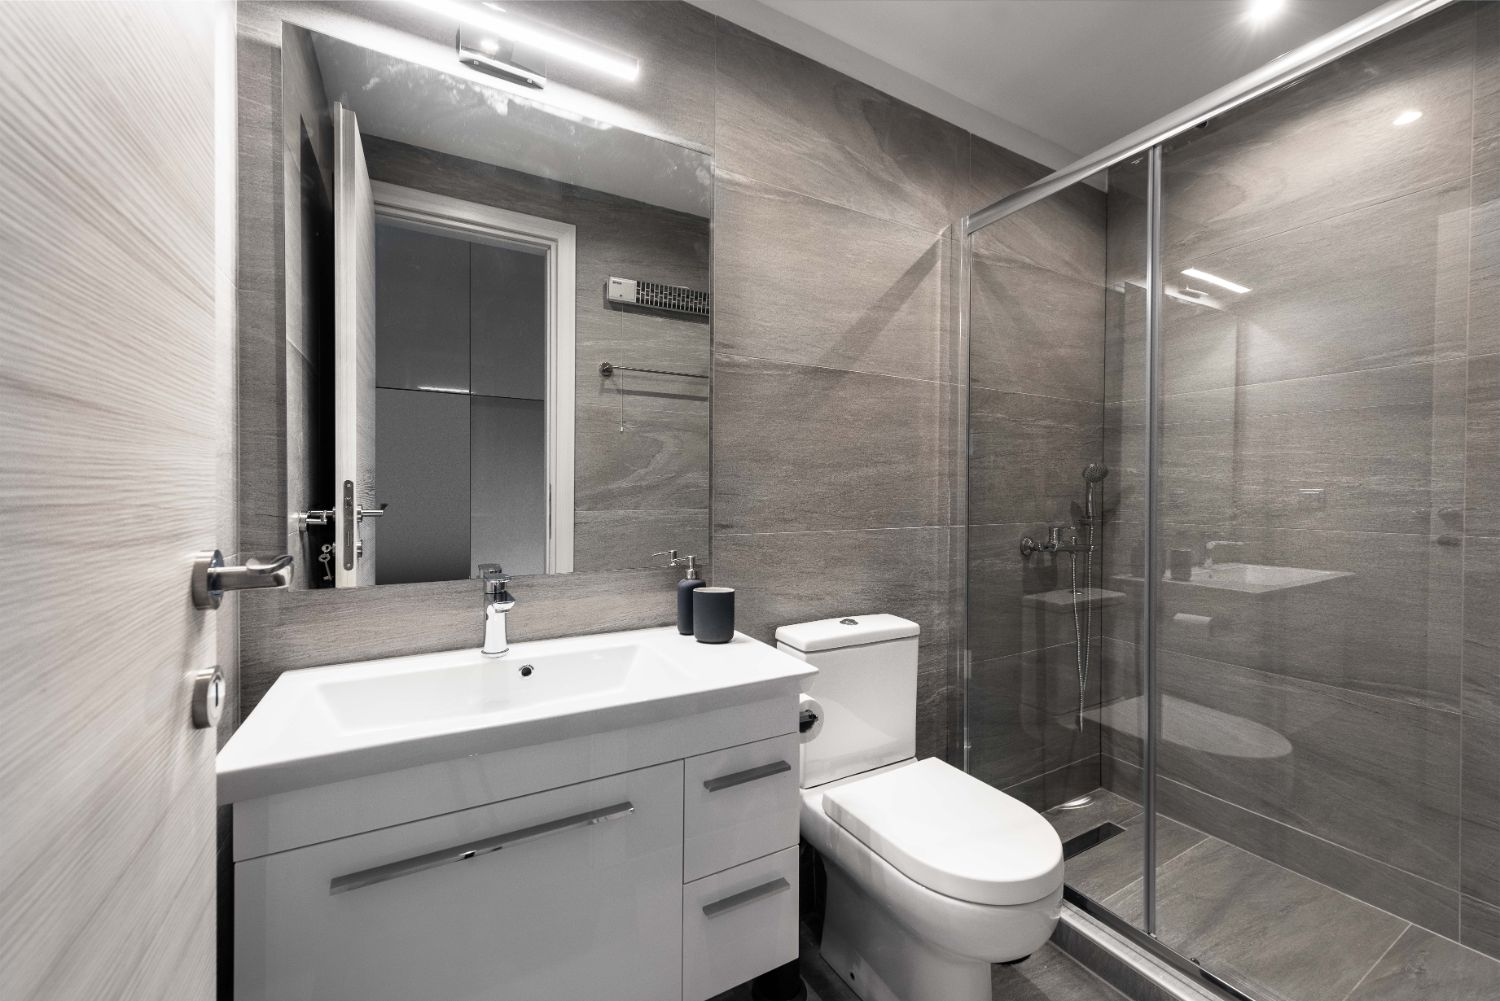 Suite #1, Bathroom with Shower and WC